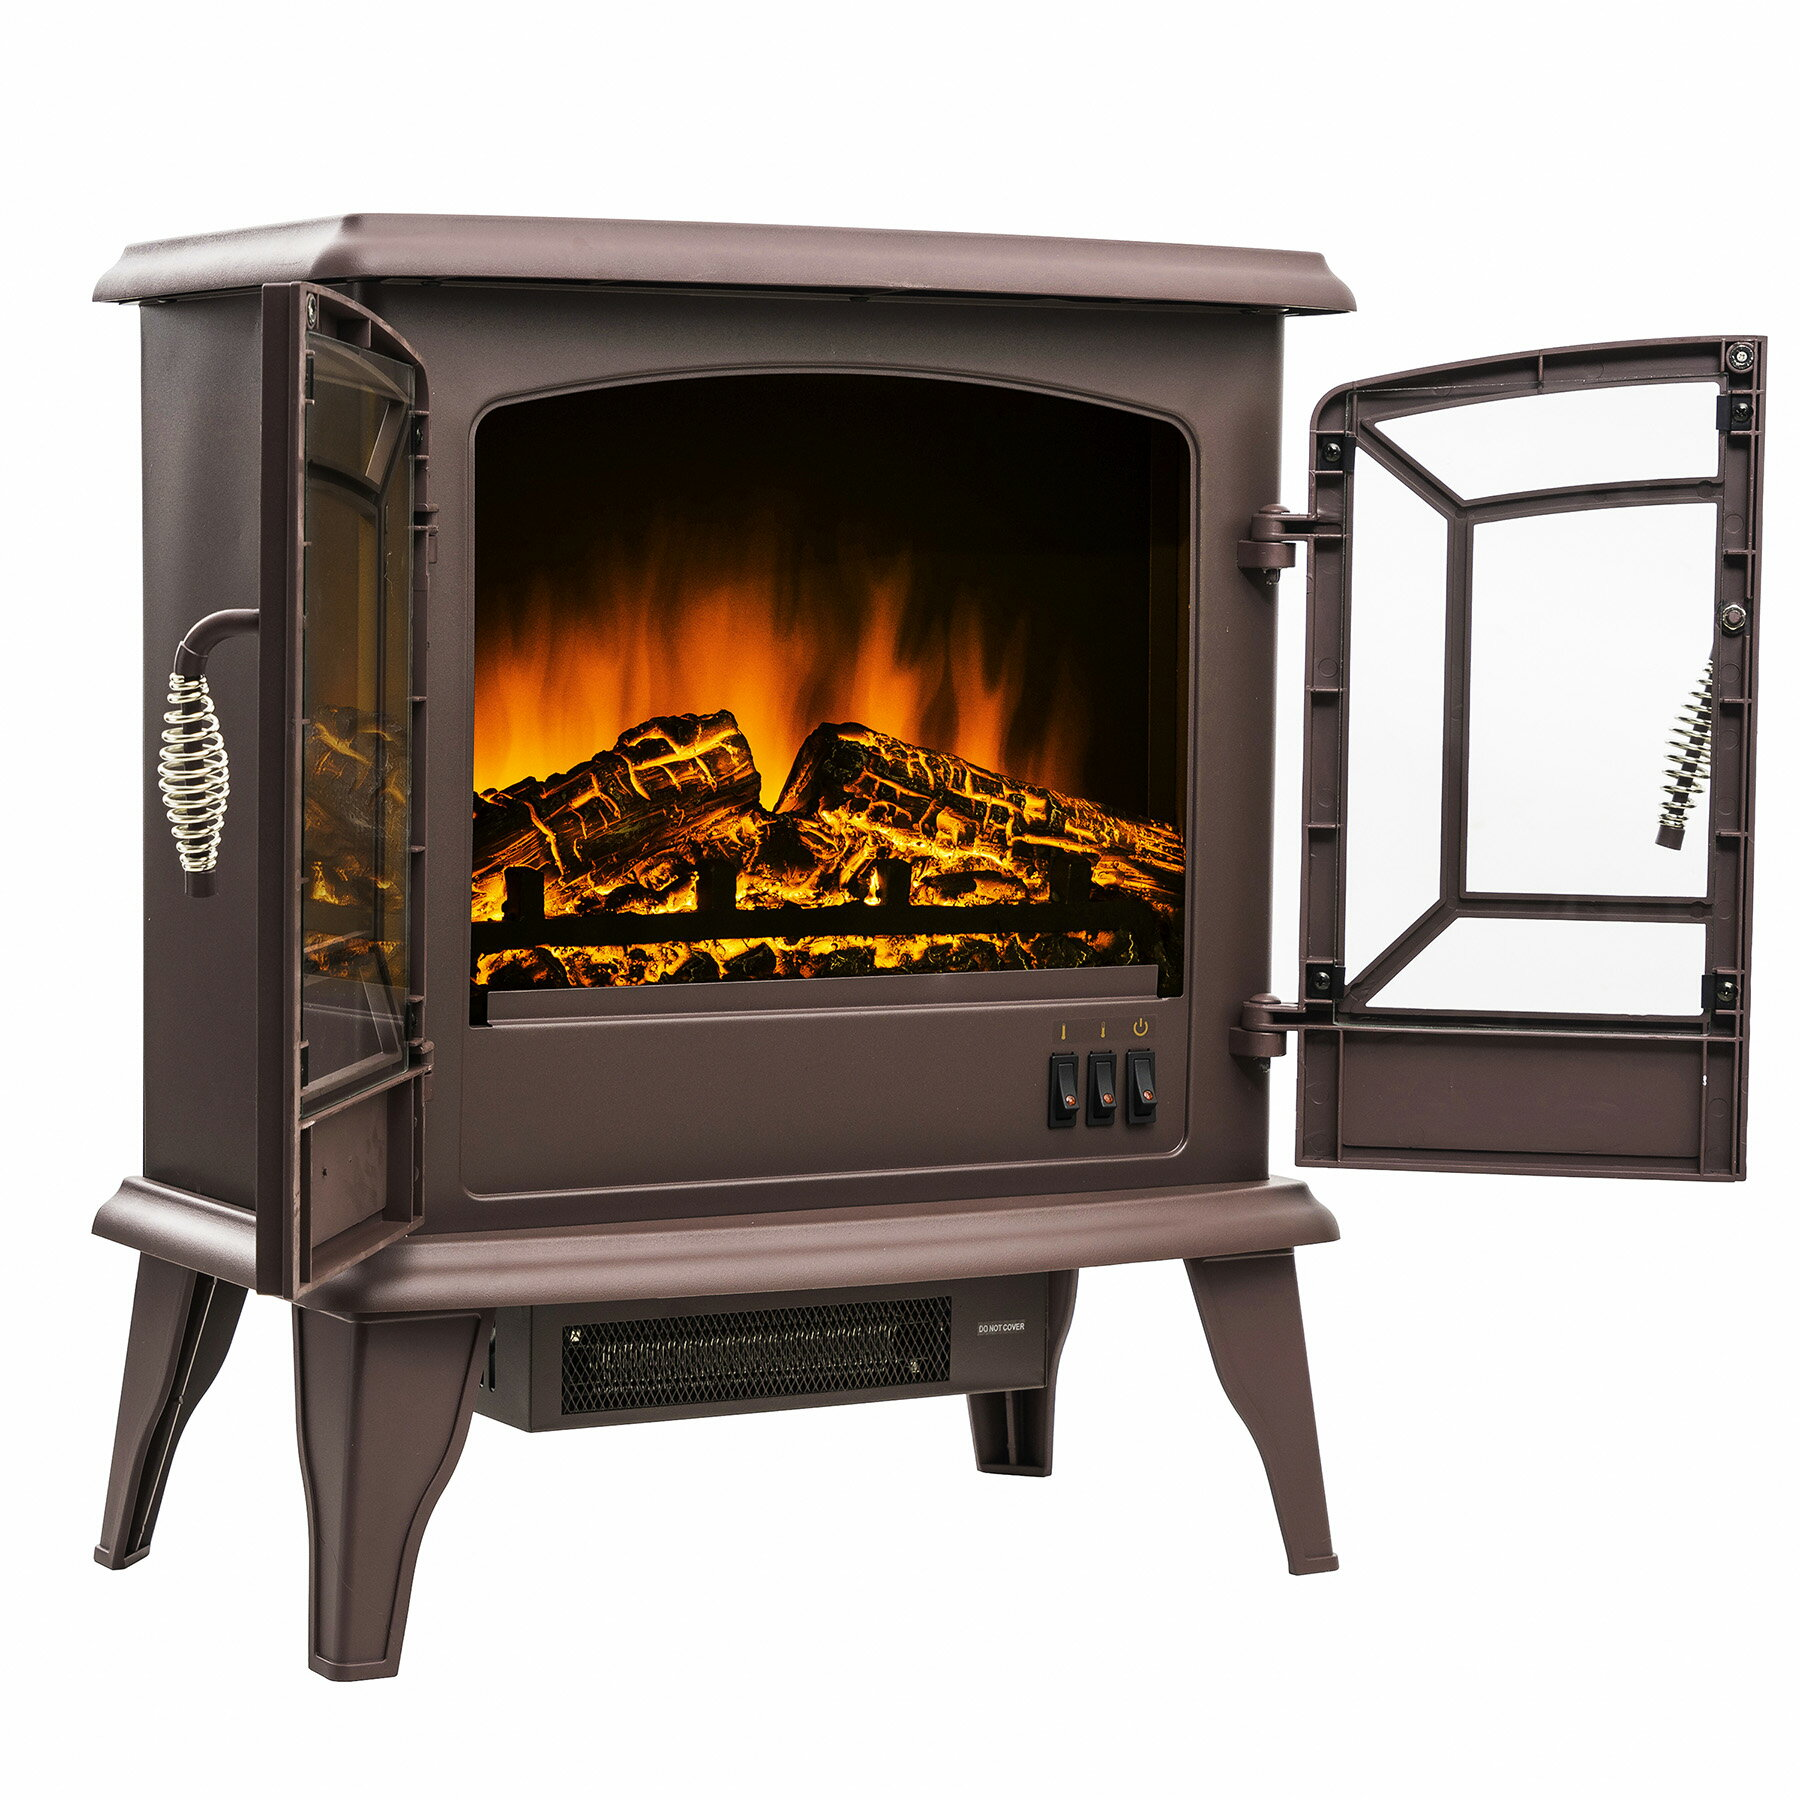 "AKDY 20"" Portable Freestanding Electric Fireplace Stove Heater 3"